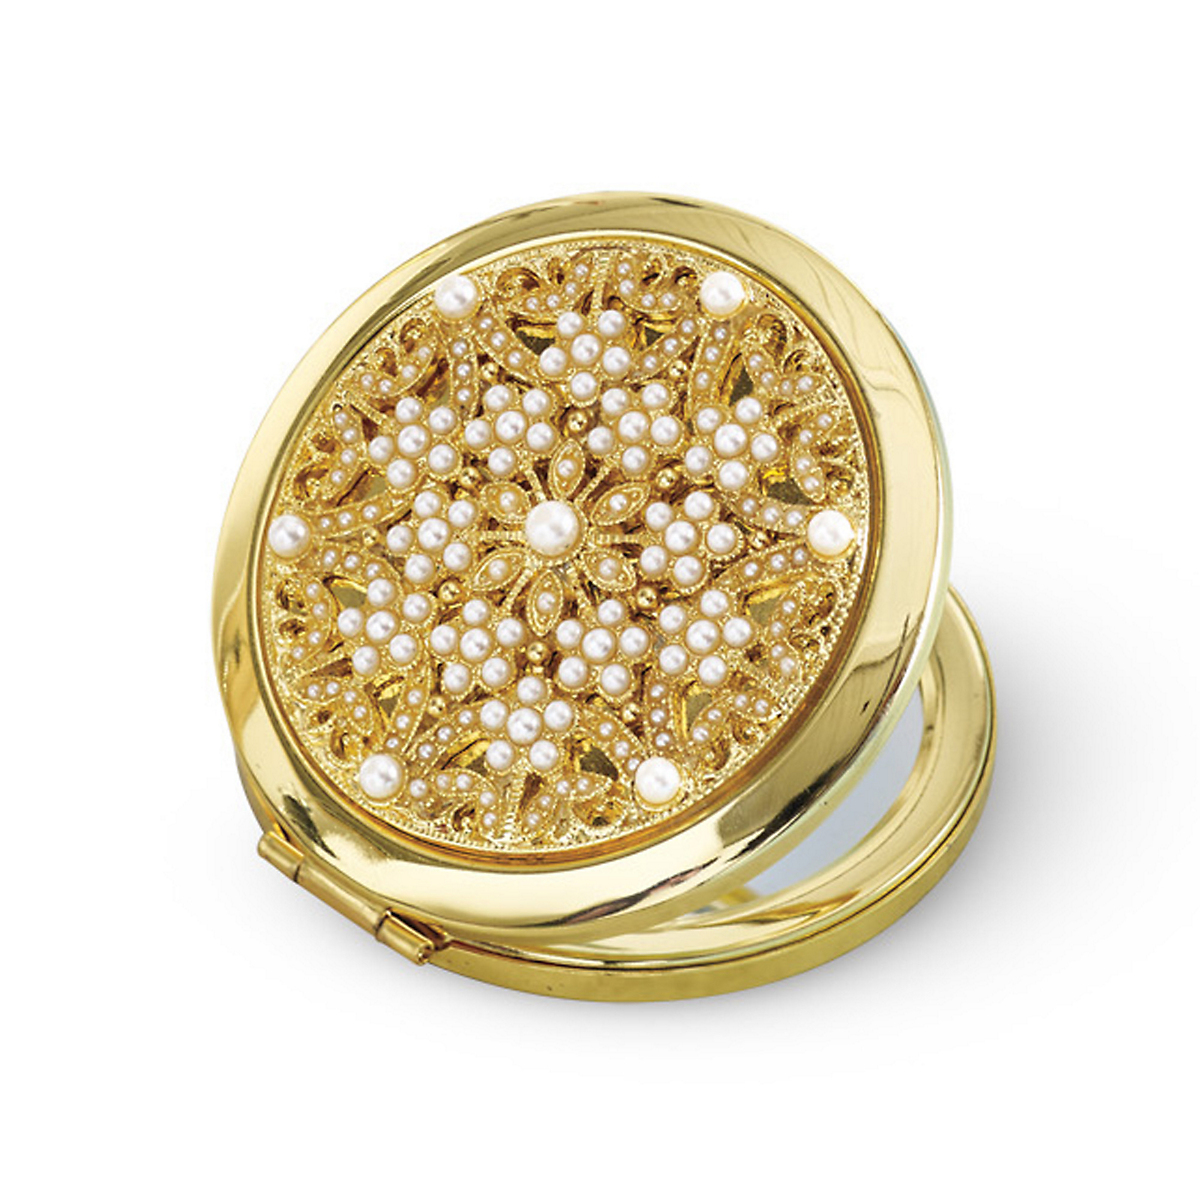 Pearl & Gold Compact